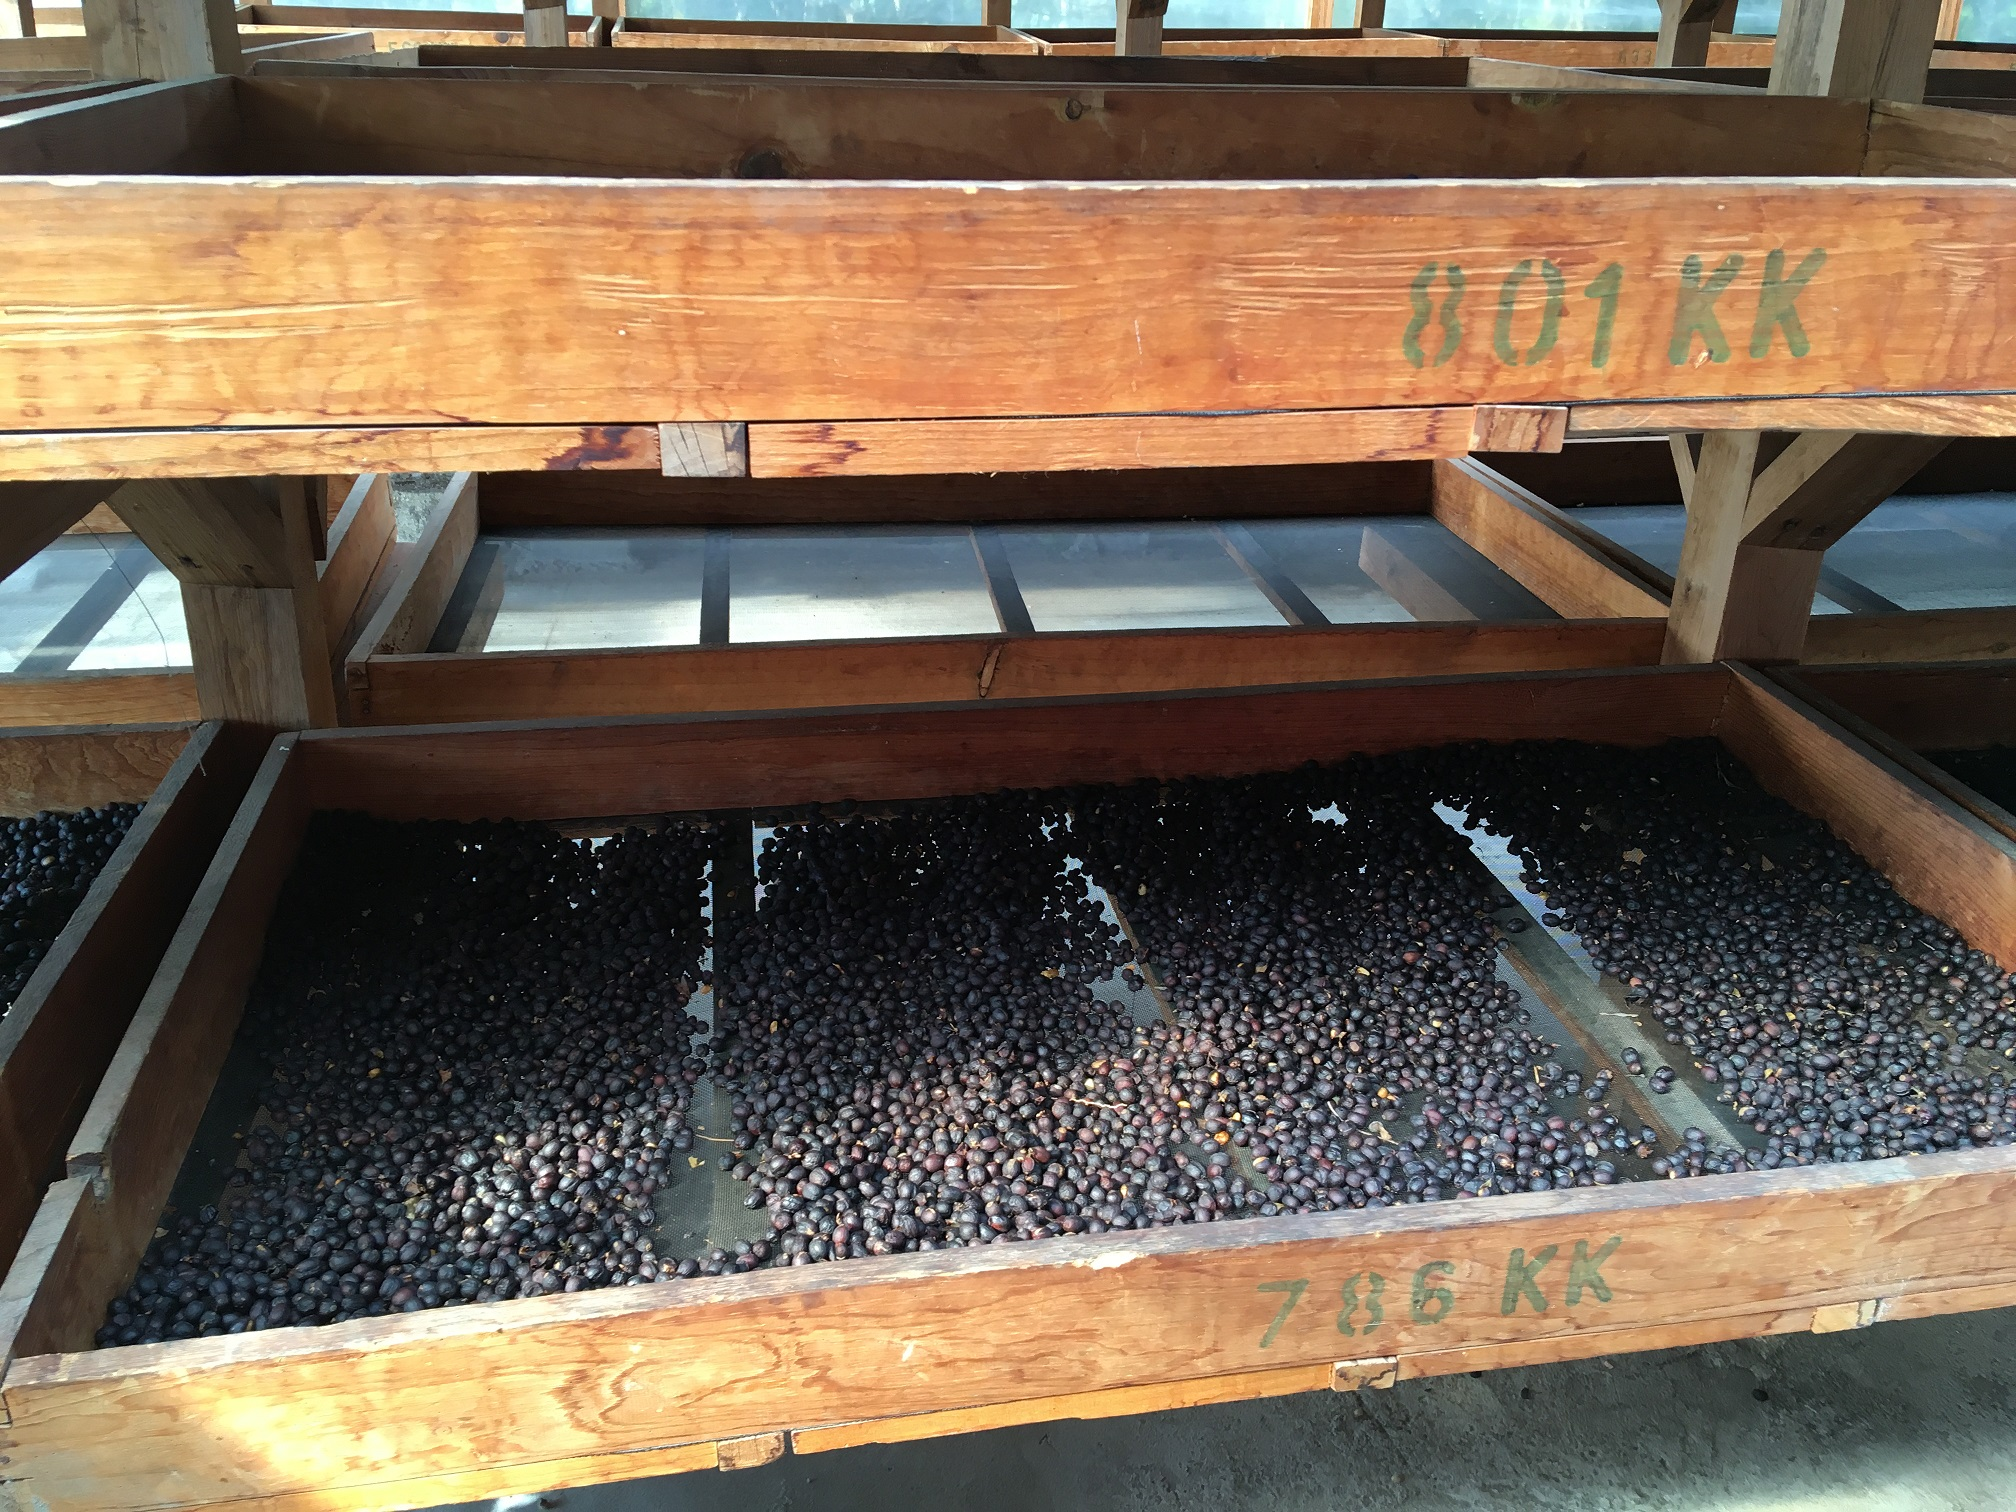 Natural coffee, drying on beds in its fruit